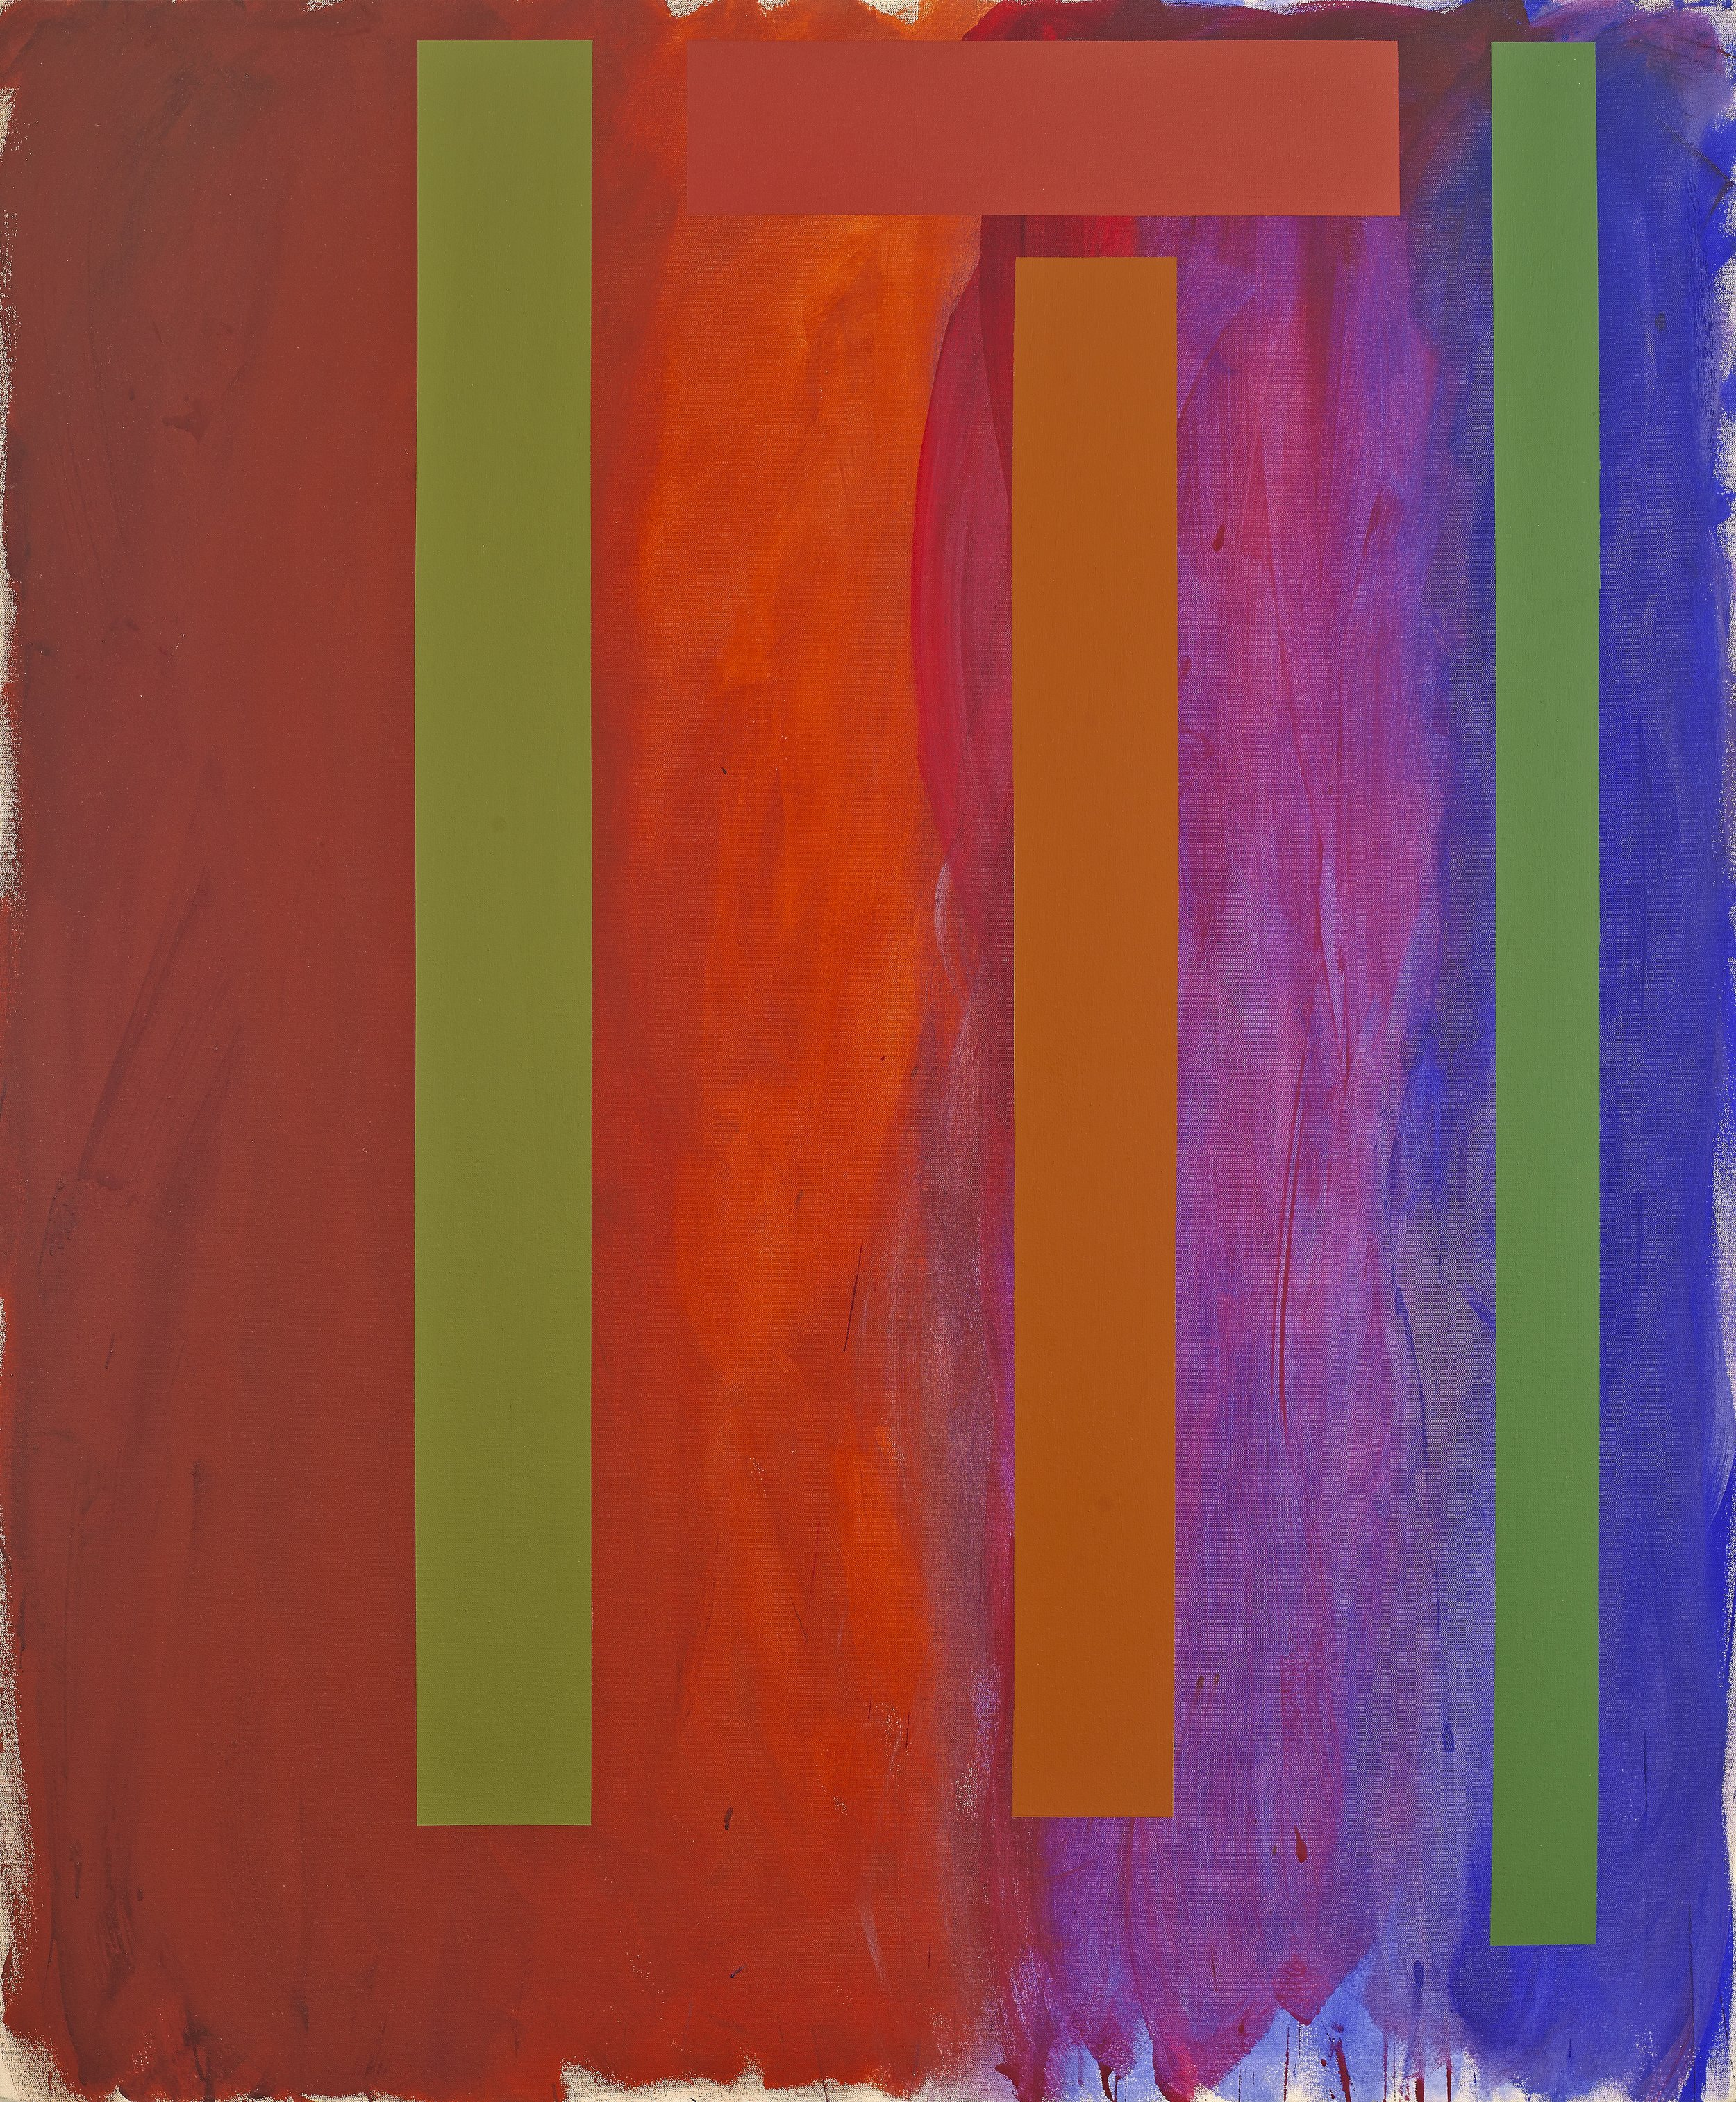 Doug Ohlson  (1936-2010)  Seton , 1988 acrylic on canvas 72 x 60 inches; 182.9 x 152.4 centimeters